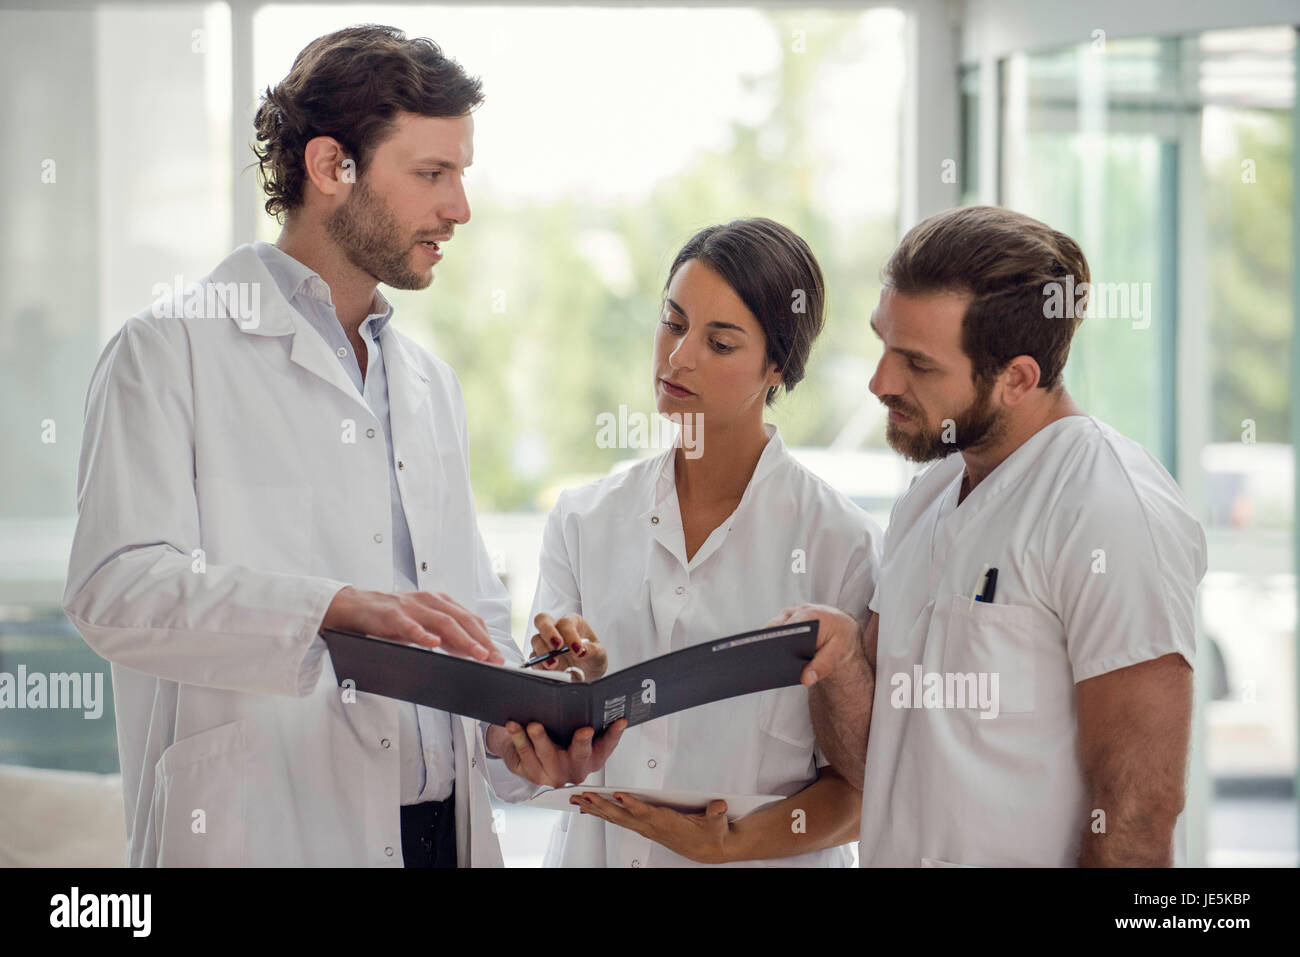 Healthcare professionals working together - Stock Image